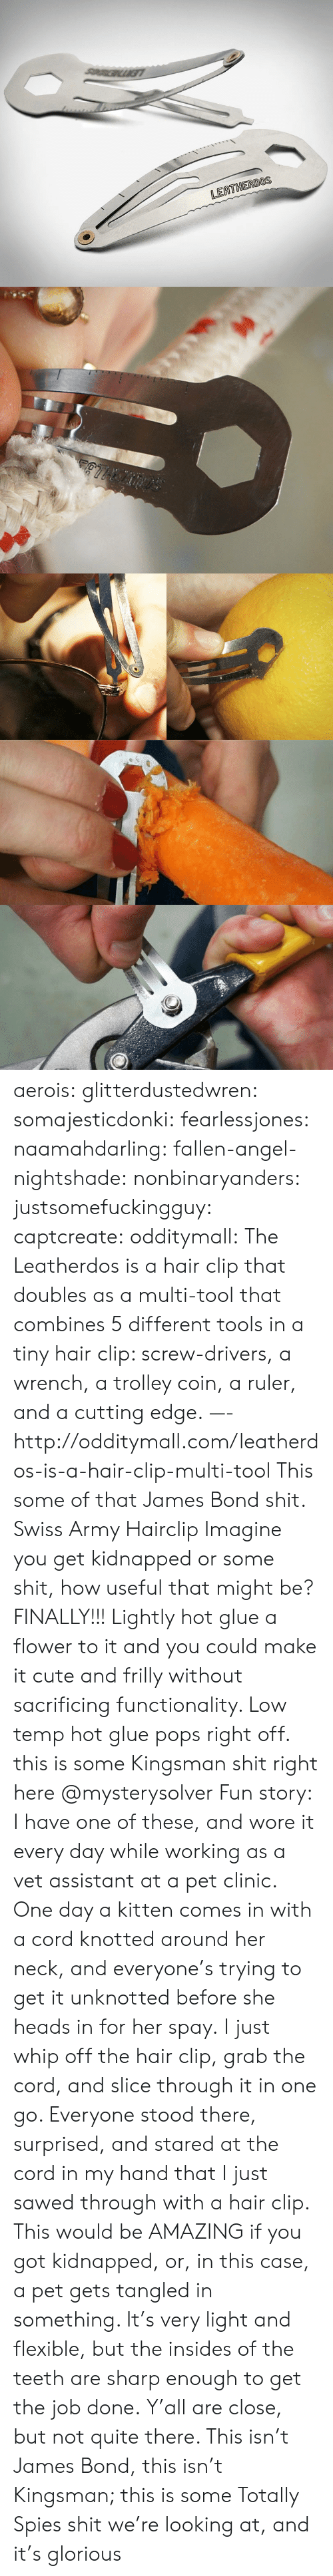 Tangled: LEATHERDOS aerois:  glitterdustedwren:  somajesticdonki:  fearlessjones:  naamahdarling:  fallen-angel-nightshade:  nonbinaryanders:  justsomefuckingguy:  captcreate:  odditymall:  The Leatherdos is a hair clip that doubles as a multi-tool that combines 5 different tools in a tiny hair clip: screw-drivers, a wrench, a trolley coin, a ruler, and a cutting edge. —-http://odditymall.com/leatherdos-is-a-hair-clip-multi-tool  This some of that James Bond shit.  Swiss Army Hairclip  Imagine you get kidnapped or some shit, how useful that might be?  FINALLY!!!   Lightly hot glue a flower to it and you could make it cute and frilly without sacrificing functionality. Low temp hot glue pops right off.   this is some Kingsman shit right here   @mysterysolver  Fun story: I have one of these, and wore it every day while working as a vet assistant at a pet clinic. One day a kitten comes in with a cord knotted around her neck, and everyone's trying to get it unknotted before she heads in for her spay. I just whip off the hair clip, grab the cord, and slice through it in one go. Everyone stood there, surprised, and stared at the cord in my hand that I just sawed through with a hair clip.  This would be AMAZING if you got kidnapped, or, in this case, a pet gets tangled in something. It's very light and flexible, but the insides of the teeth are sharp enough to get the job done.  Y'all are close, but not quite there. This isn't James Bond, this isn't Kingsman; this is some Totally Spies shit we're looking at, and it's glorious